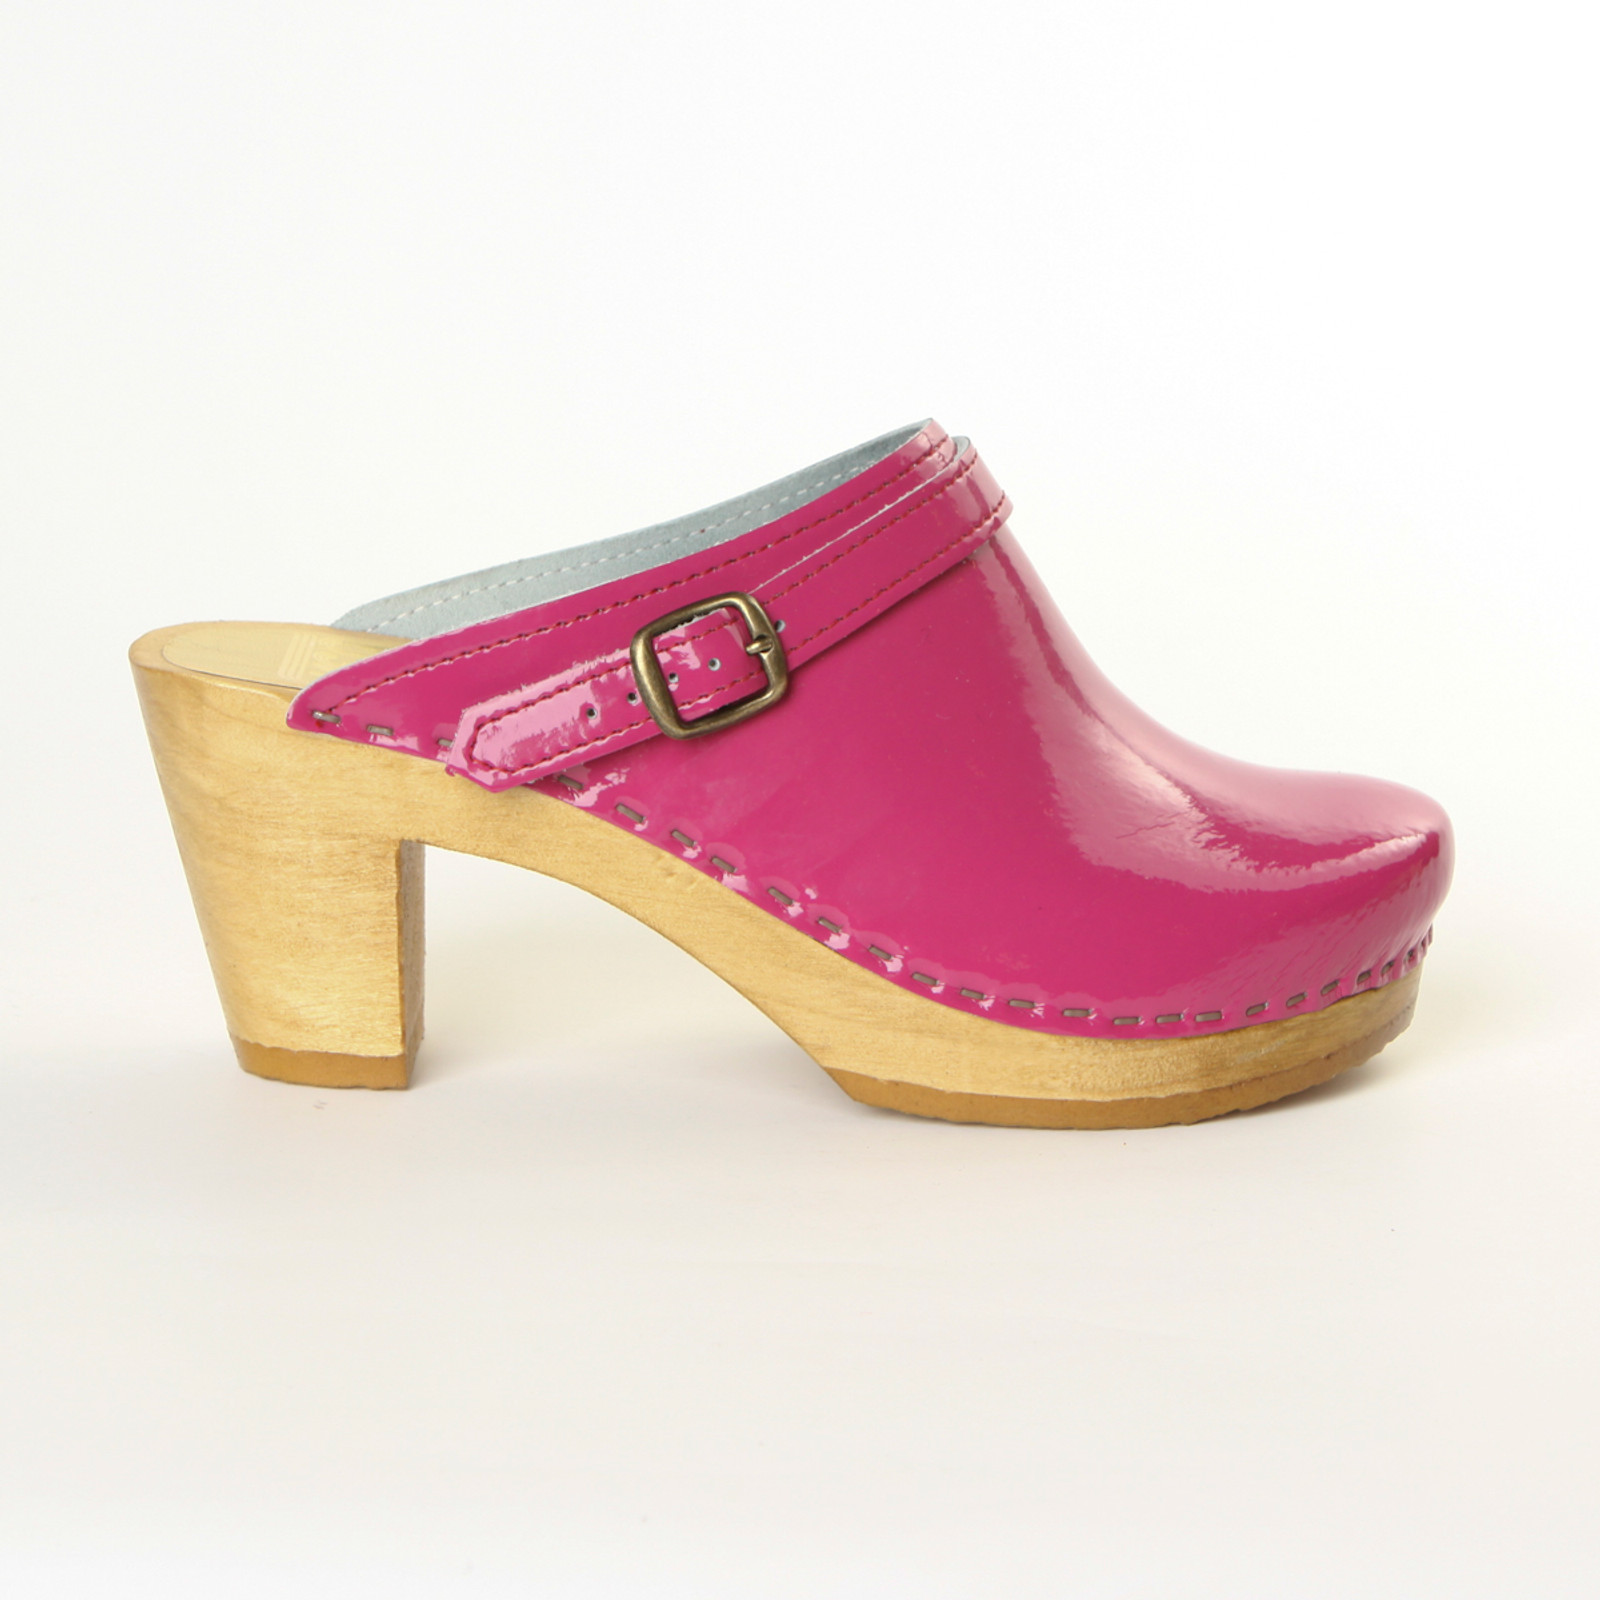 Magenta Patent Leather with Brown Base.